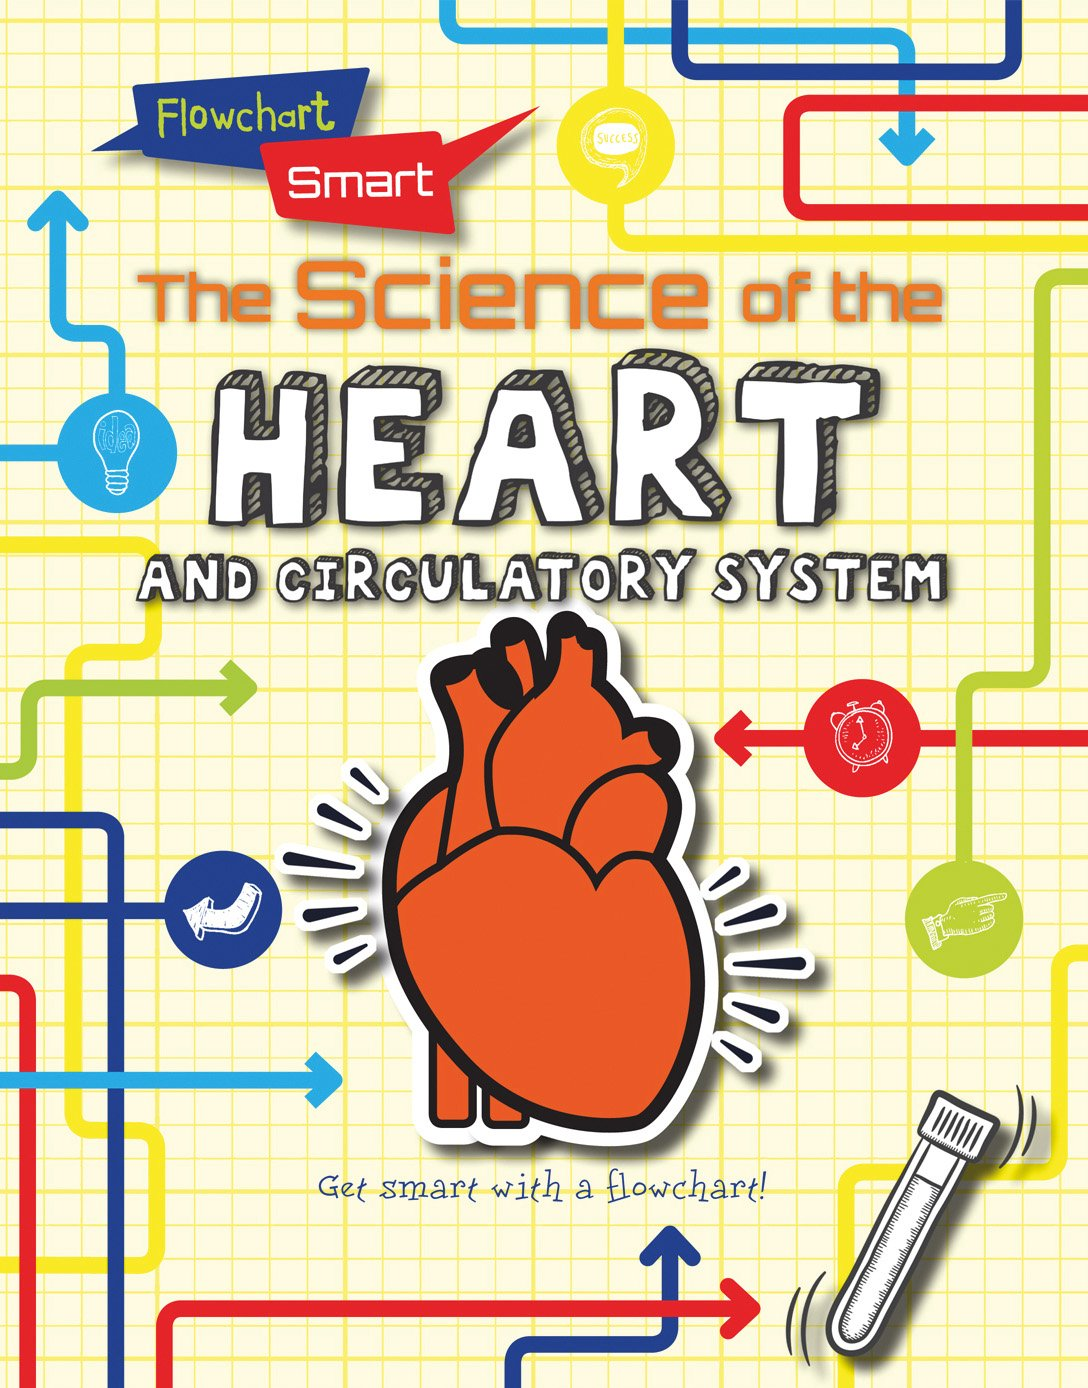 The Science of the Heart and Circulatory System (Flowchart Smart) pdf